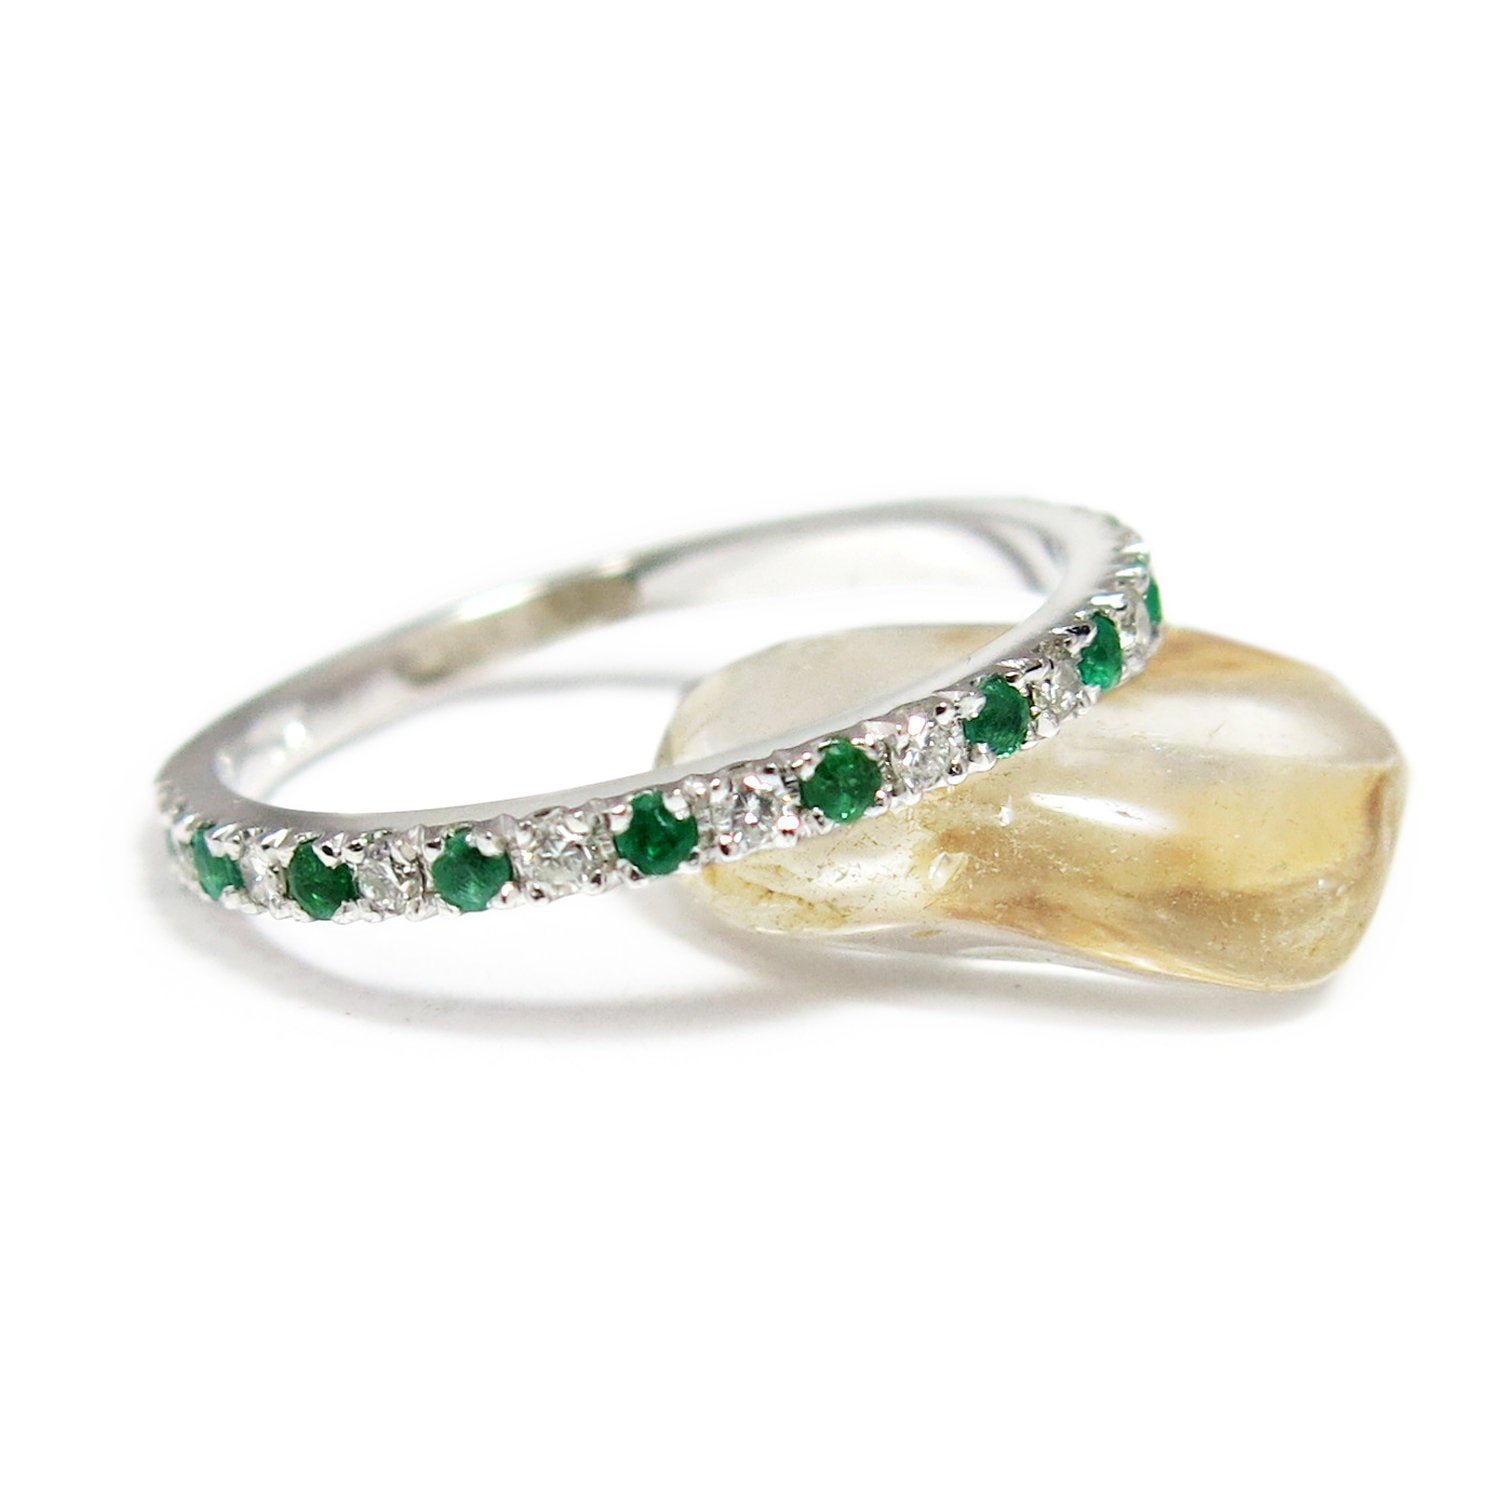 Stackable Gemstone Ring, White Gold Wedding Band, Gold Gemstone Ring,  Promise Ring, Emerald Ring, Gold Eternity Ring, Stackable Emerald Ring Within Best And Newest Sparkling & Polished Lines Rings (View 24 of 25)